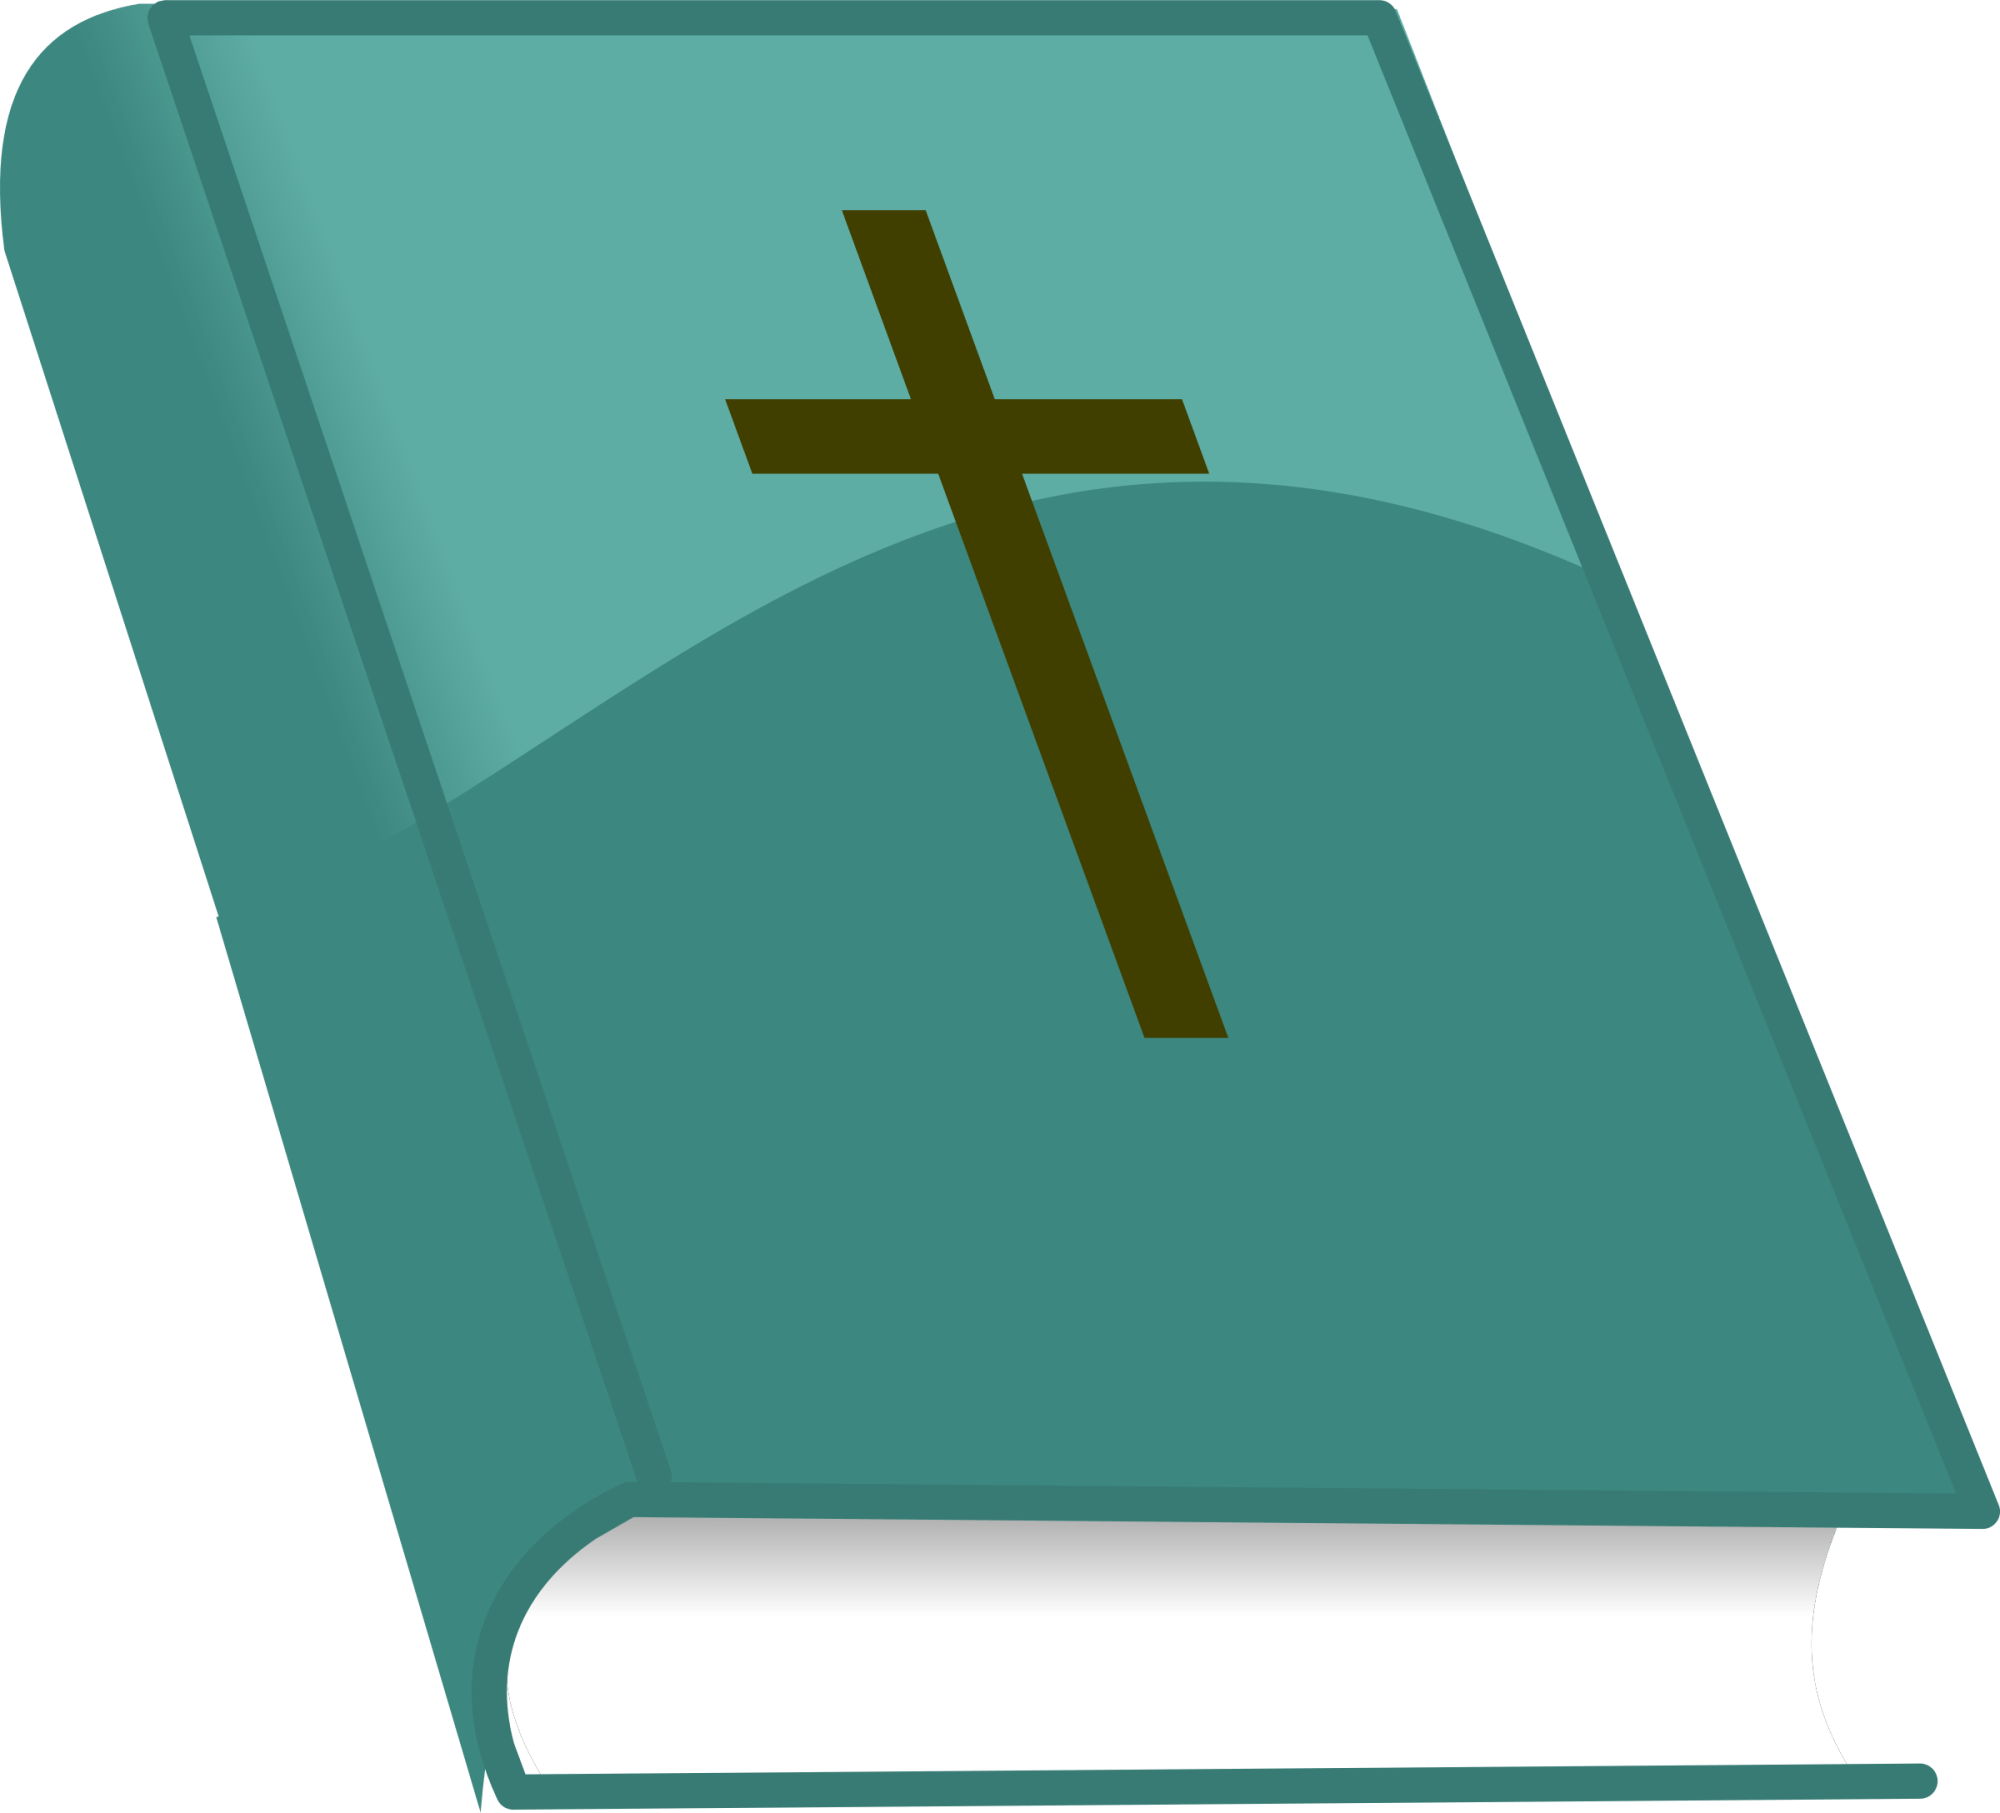 hight resolution of free photos vector images prayer book vector clipart